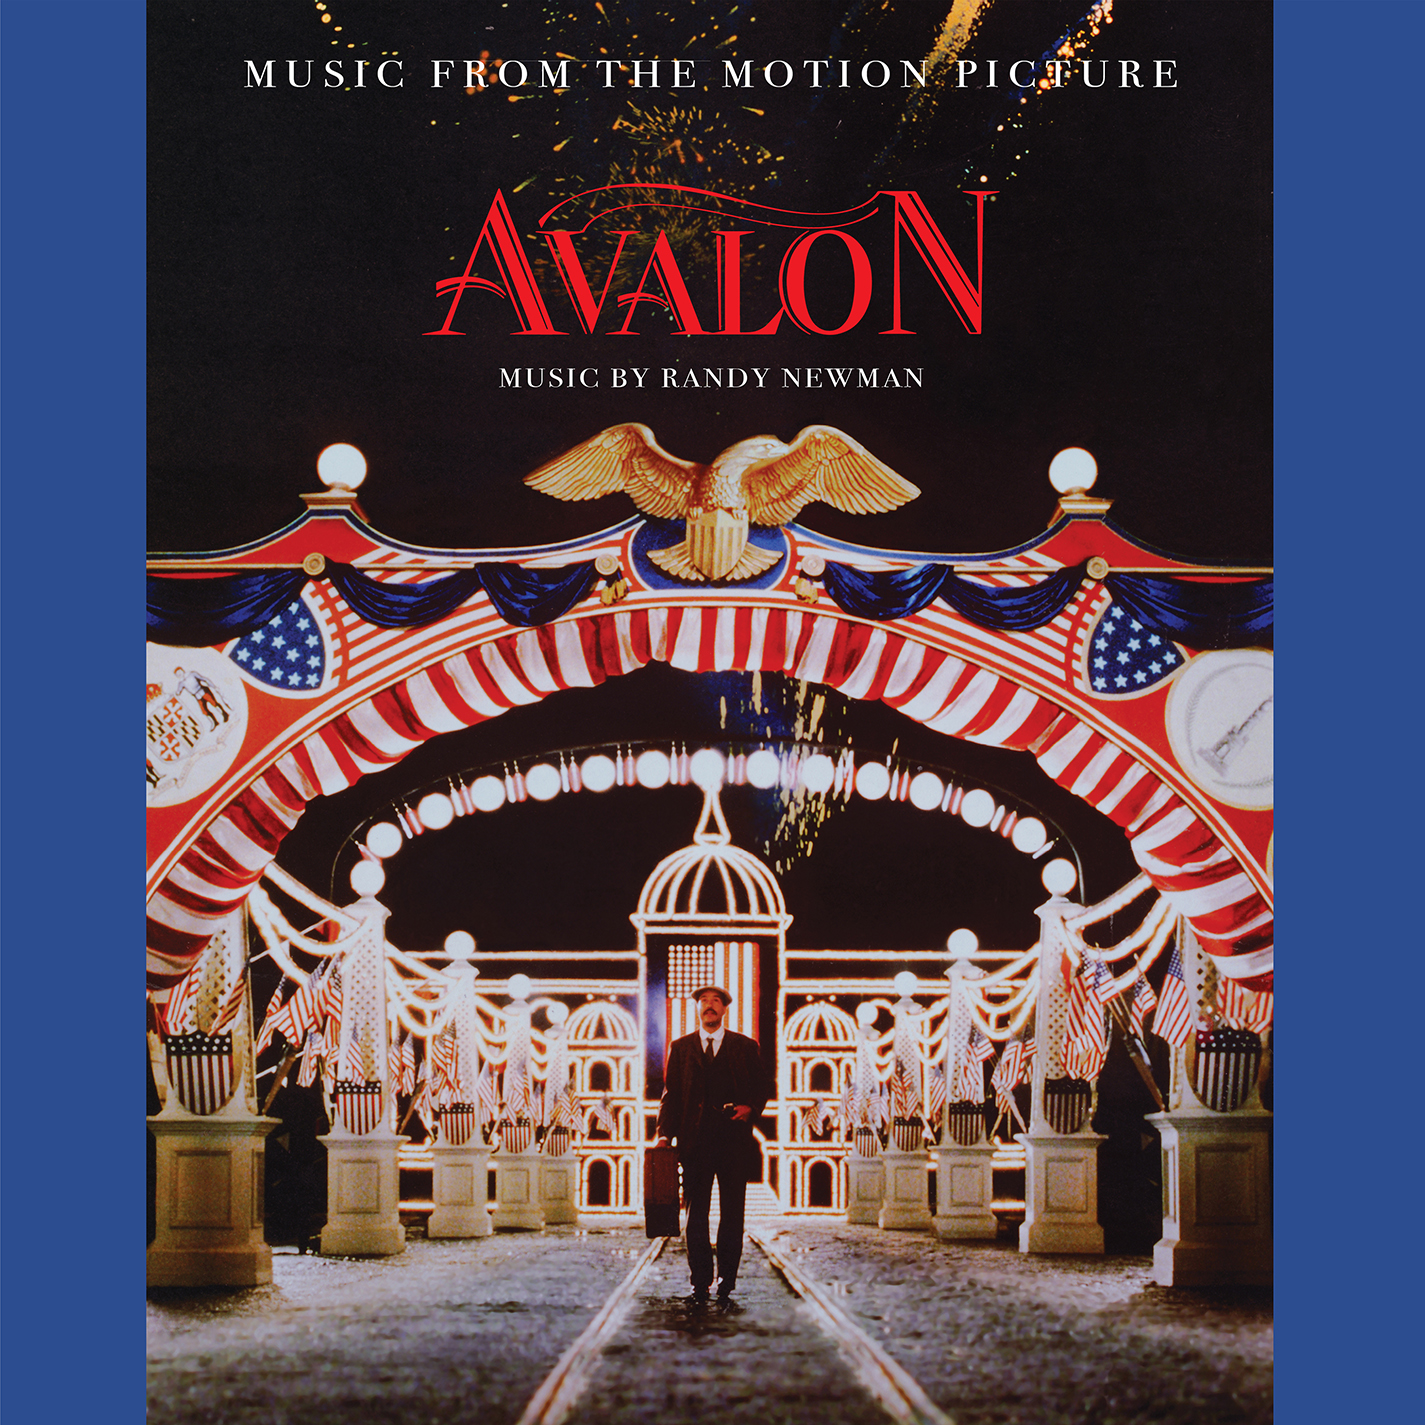 Randy Newman - Avalon (Original Motion Picture Score) [RSD Drops Oct 2020]